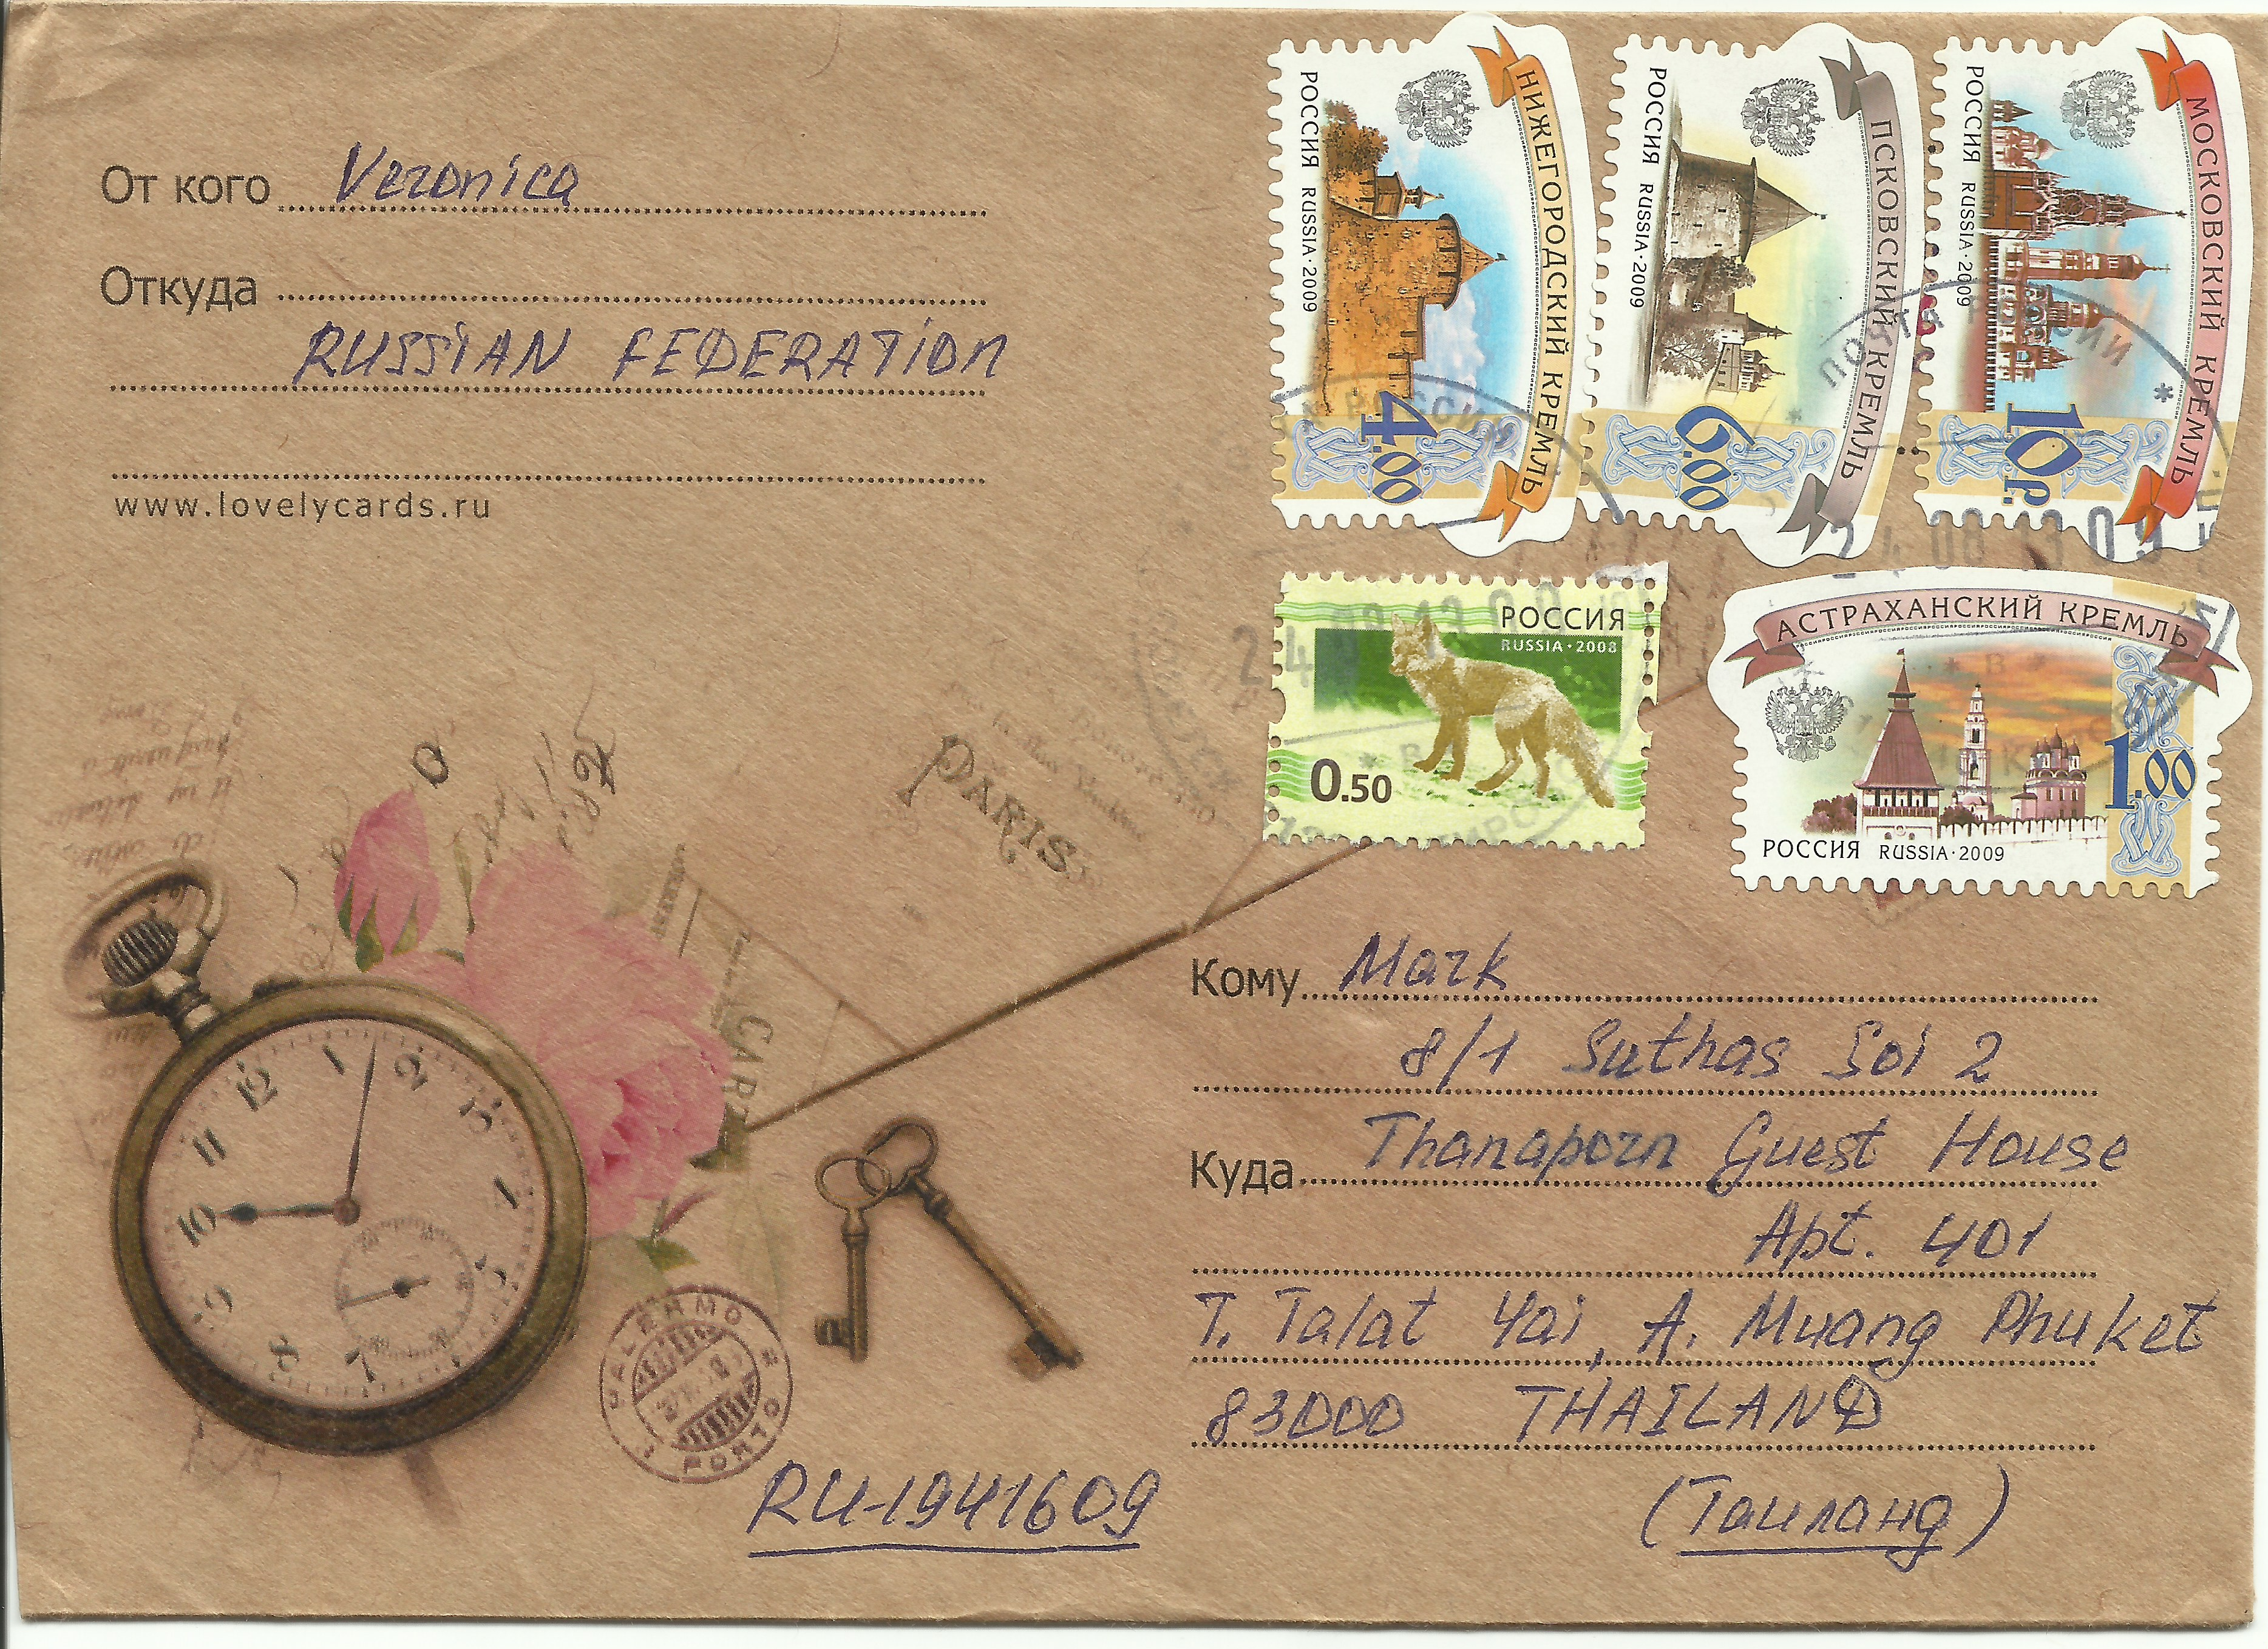 Cover I received in 2013 bearing several stamps from the 2009 Kremlins stamp issue - 1-ruble Astrakhan Kremlin (Scott #7170), 4-ruble Nizhny Novgorod Kremlin (Scott #7175), 6-ruble Pskov Kremlin (Scott #7177), and 10-ruble Moscow Kremlin (Scott #7178), as well as a 60-kopeck stamp picturing a fox released on August 29, 2009 (Scott #7086).